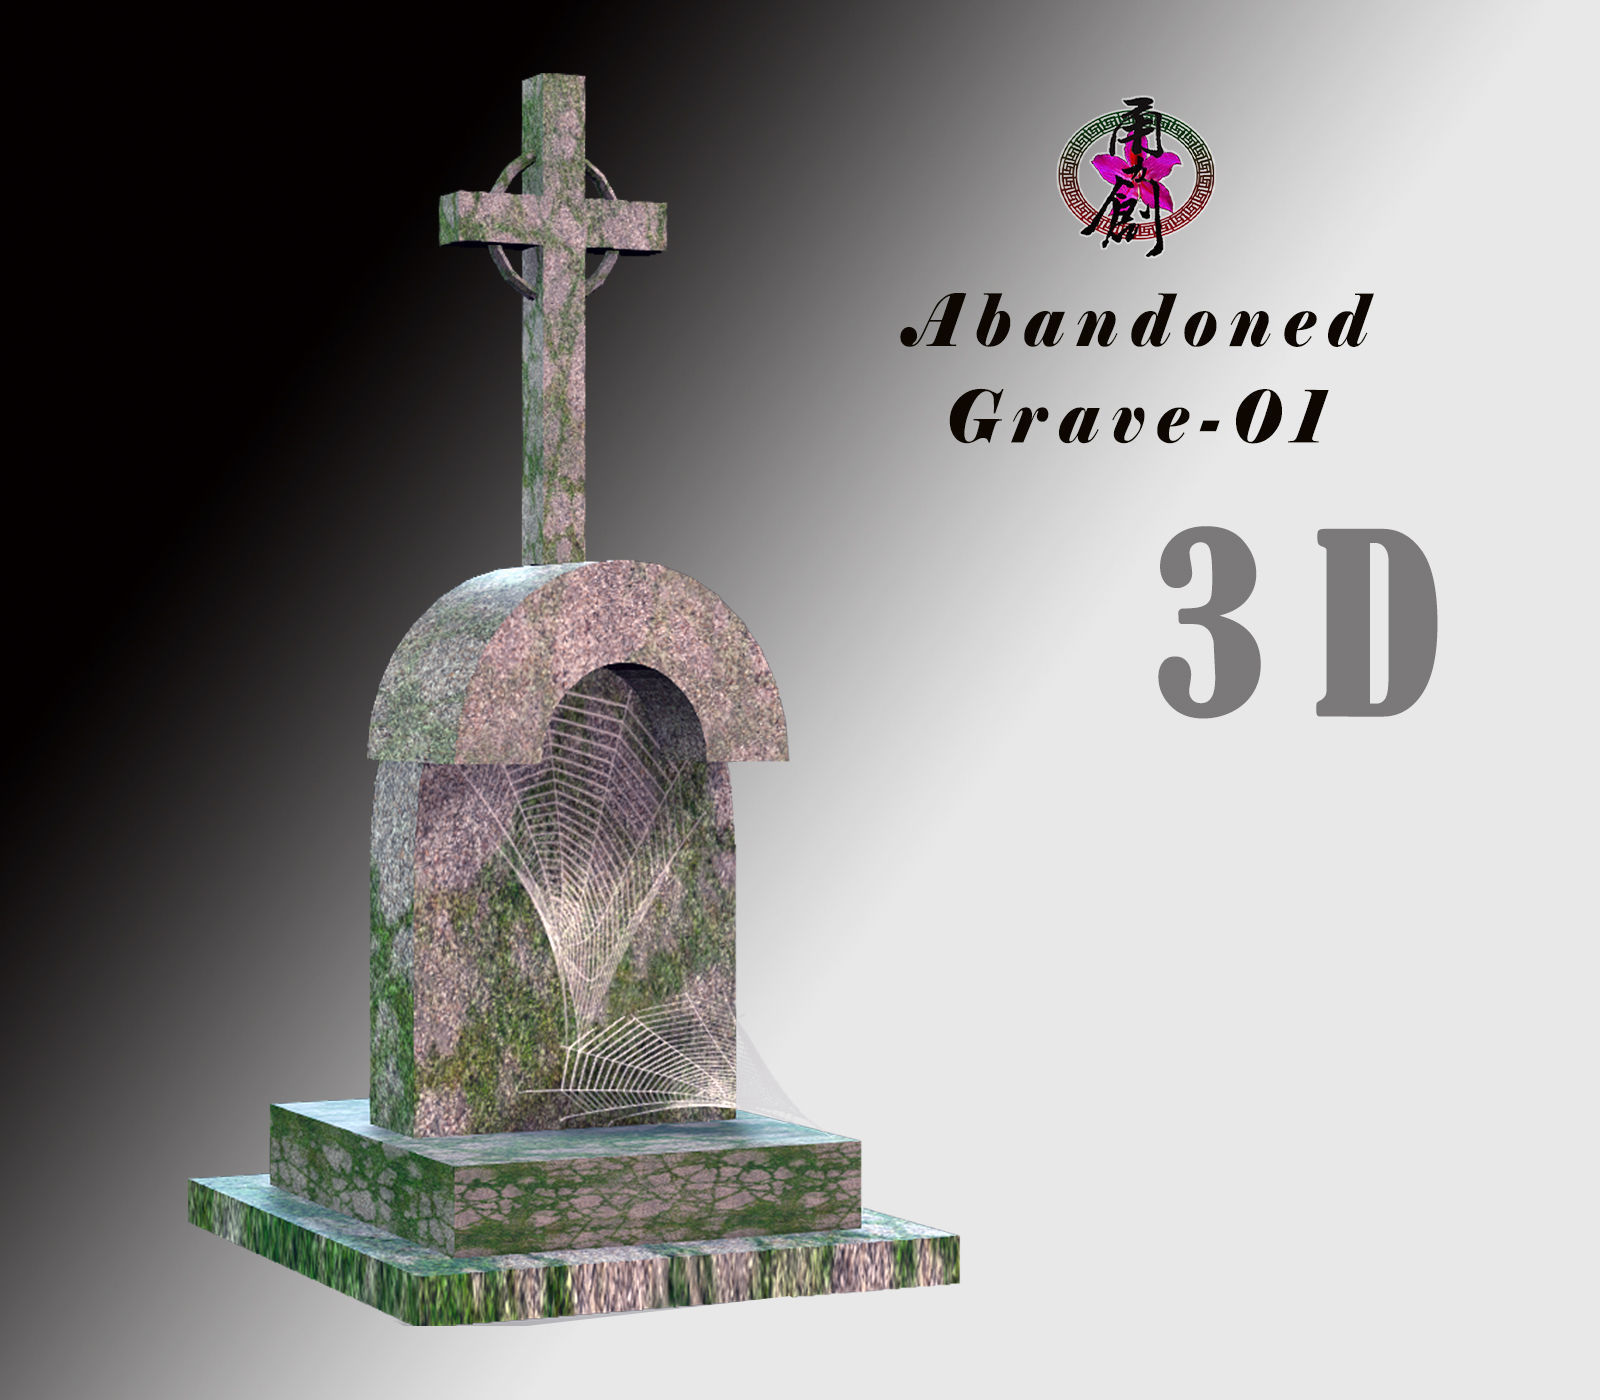 Abandoned Grave-01